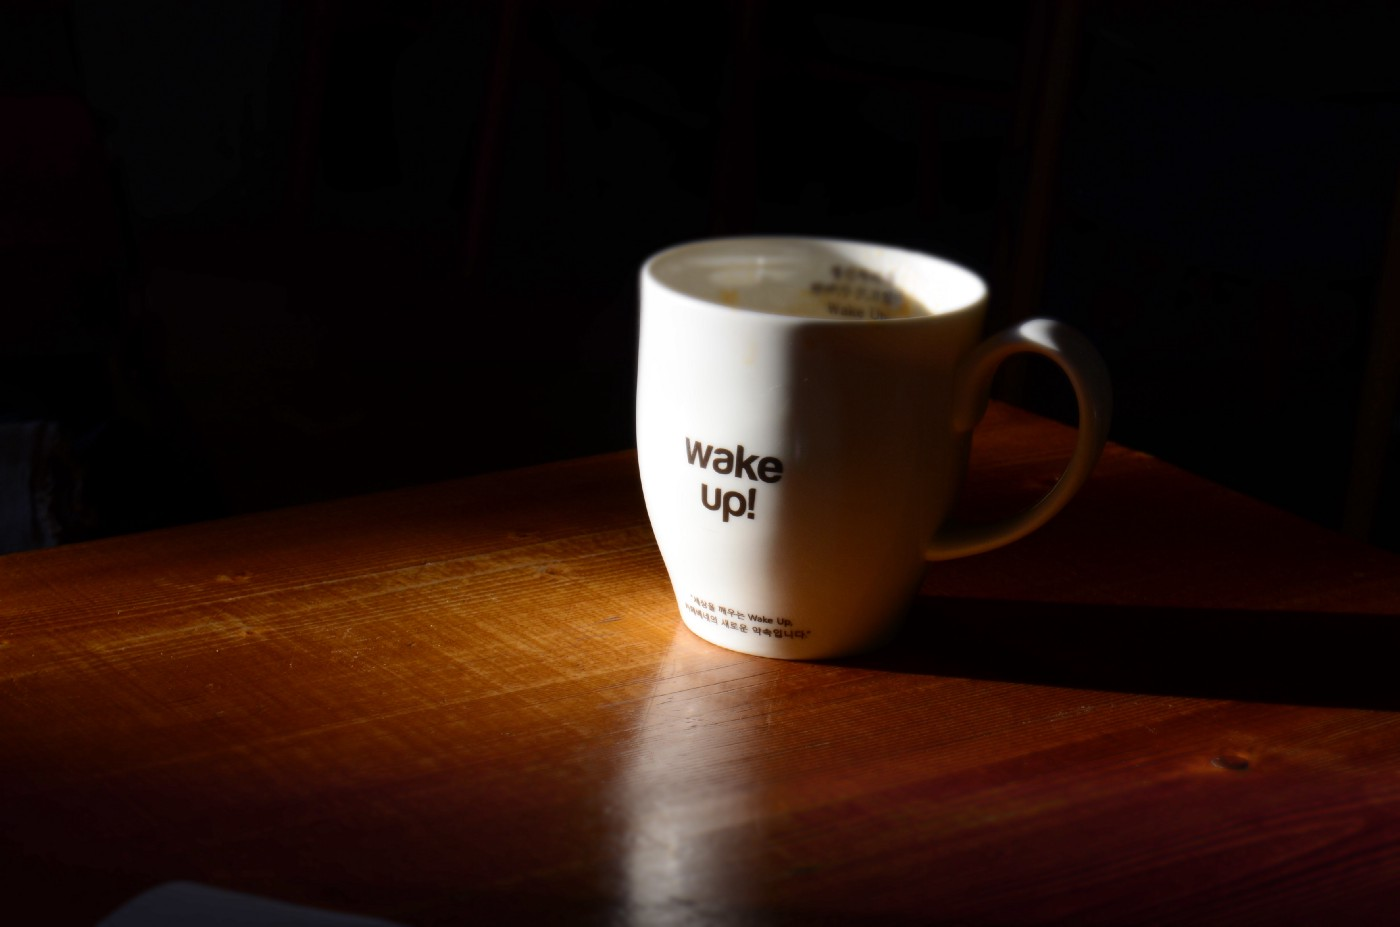 White coffee mug with Wake Up written on it.